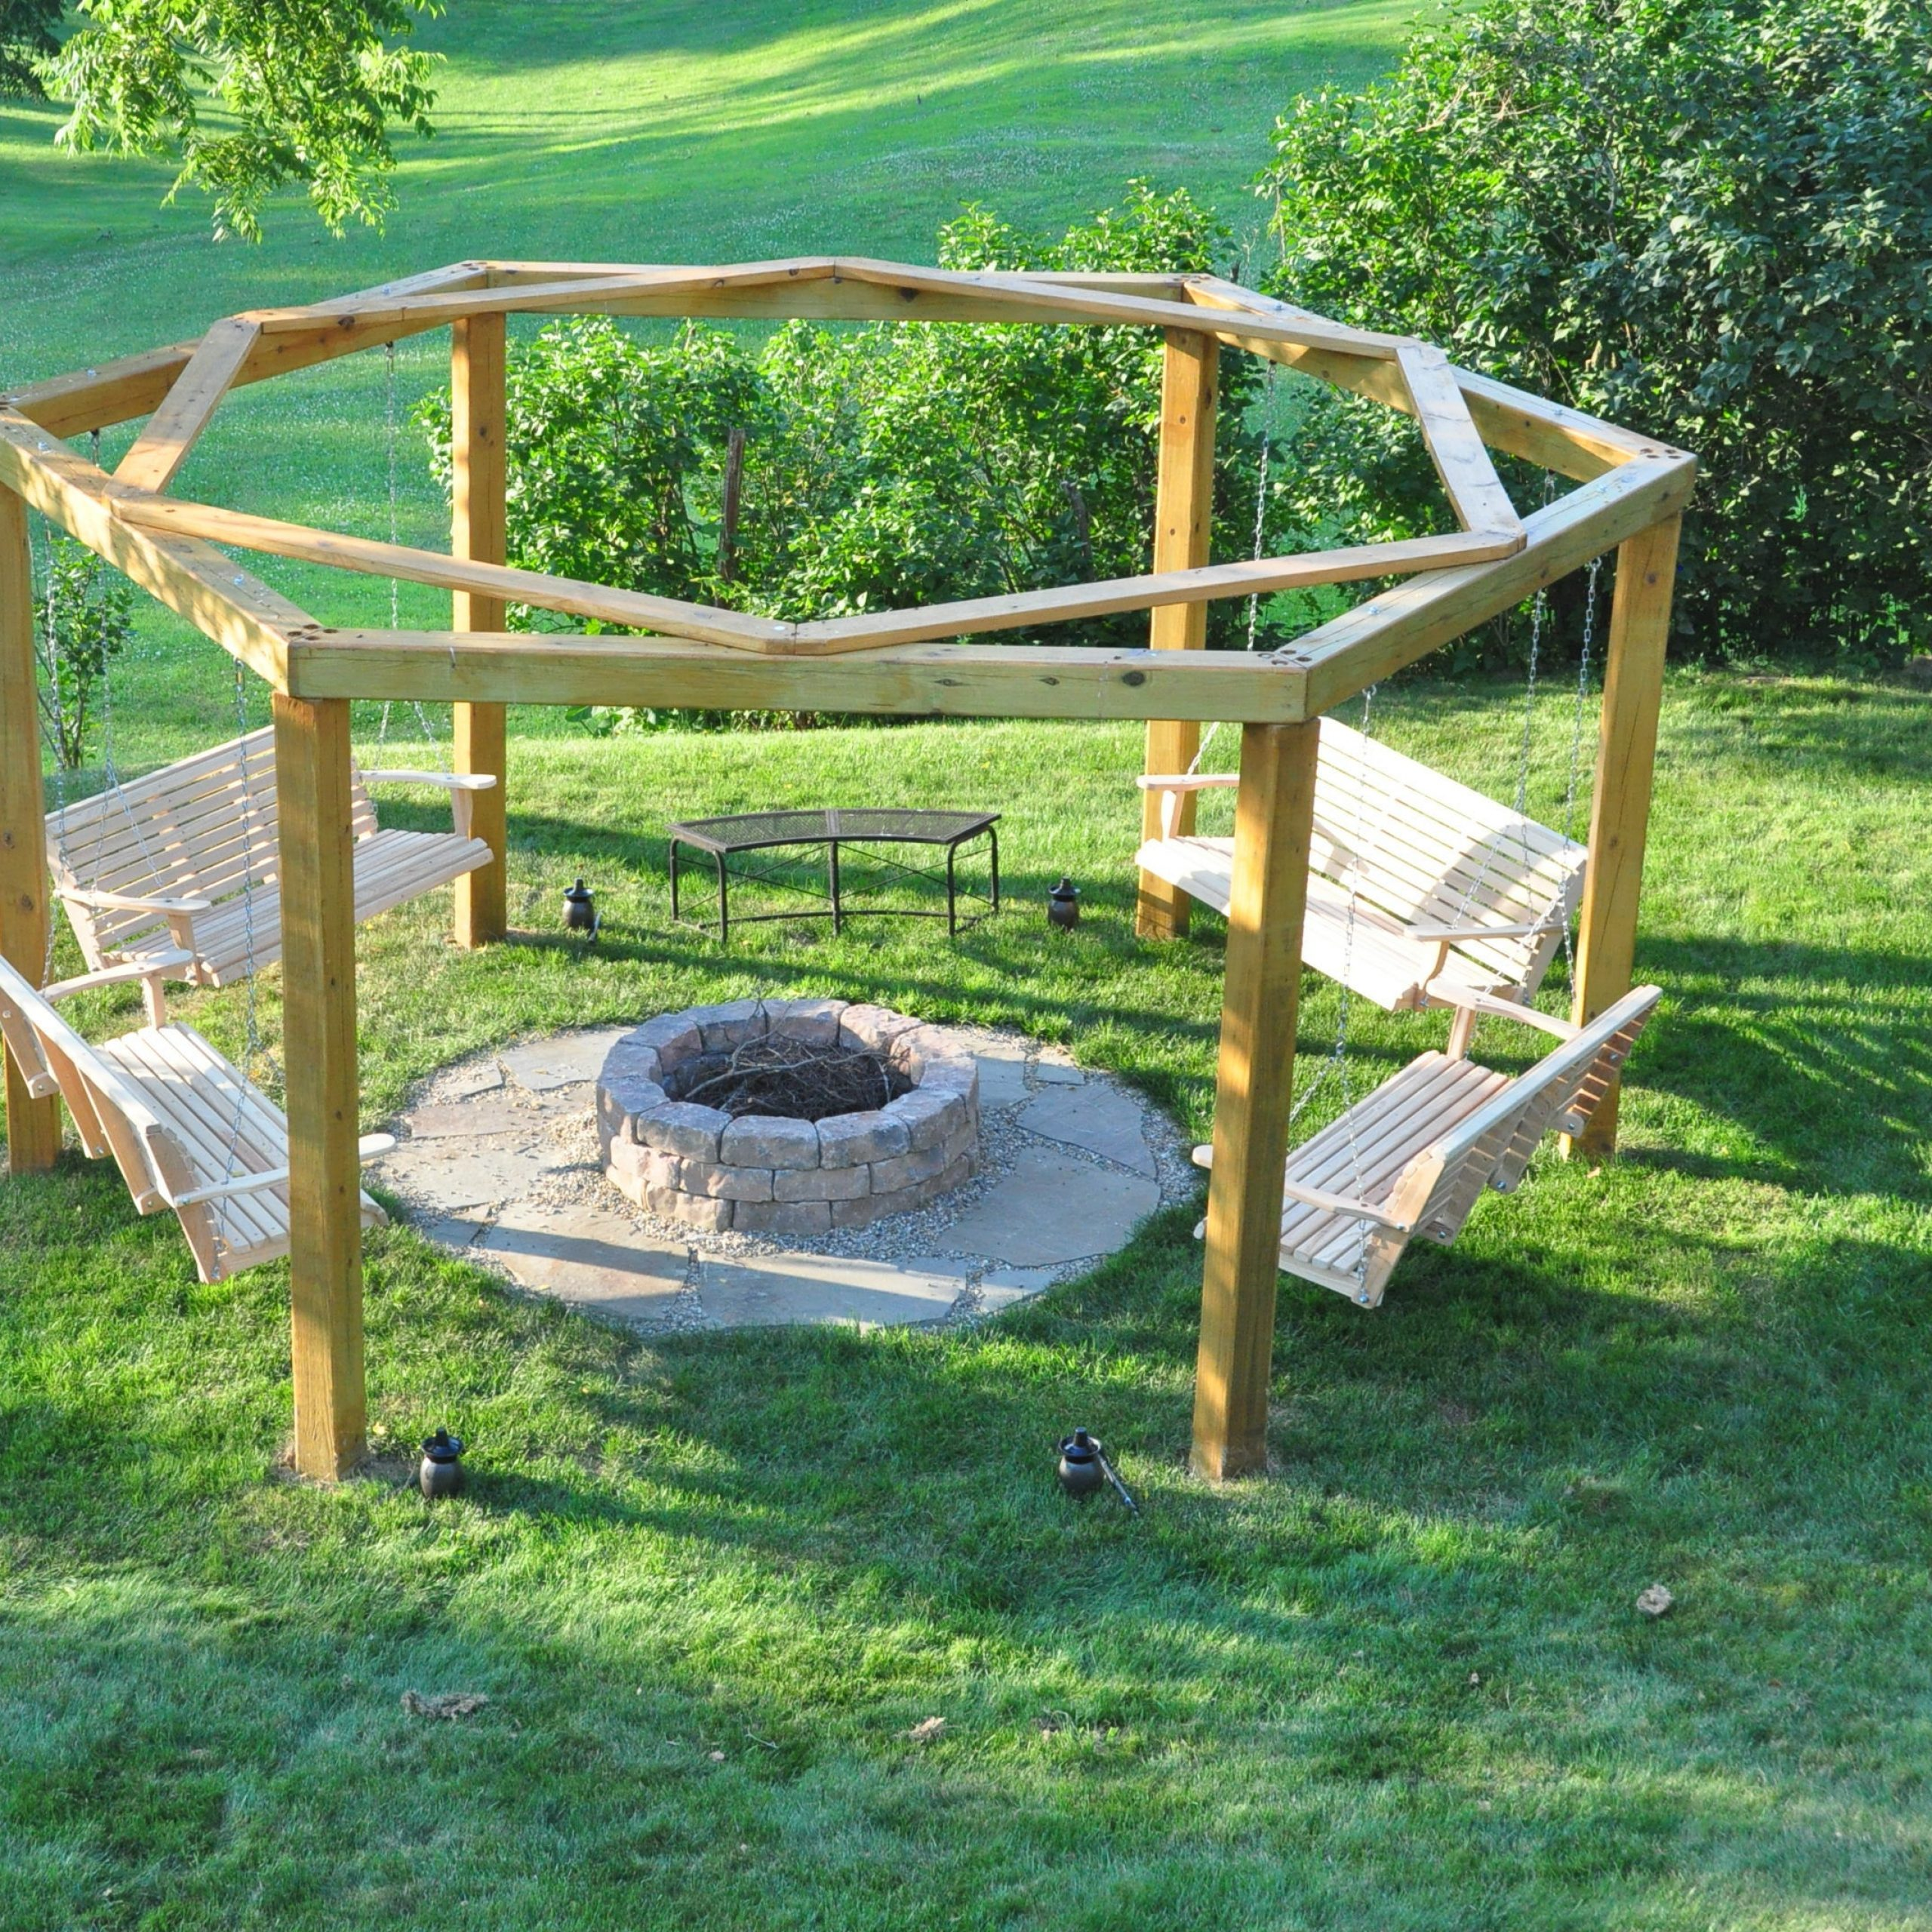 Patio Glider Hammock Porch Swings Pertaining To Current Porch Swing Fire Pit : 12 Steps (with Pictures) – Instructables (View 14 of 30)